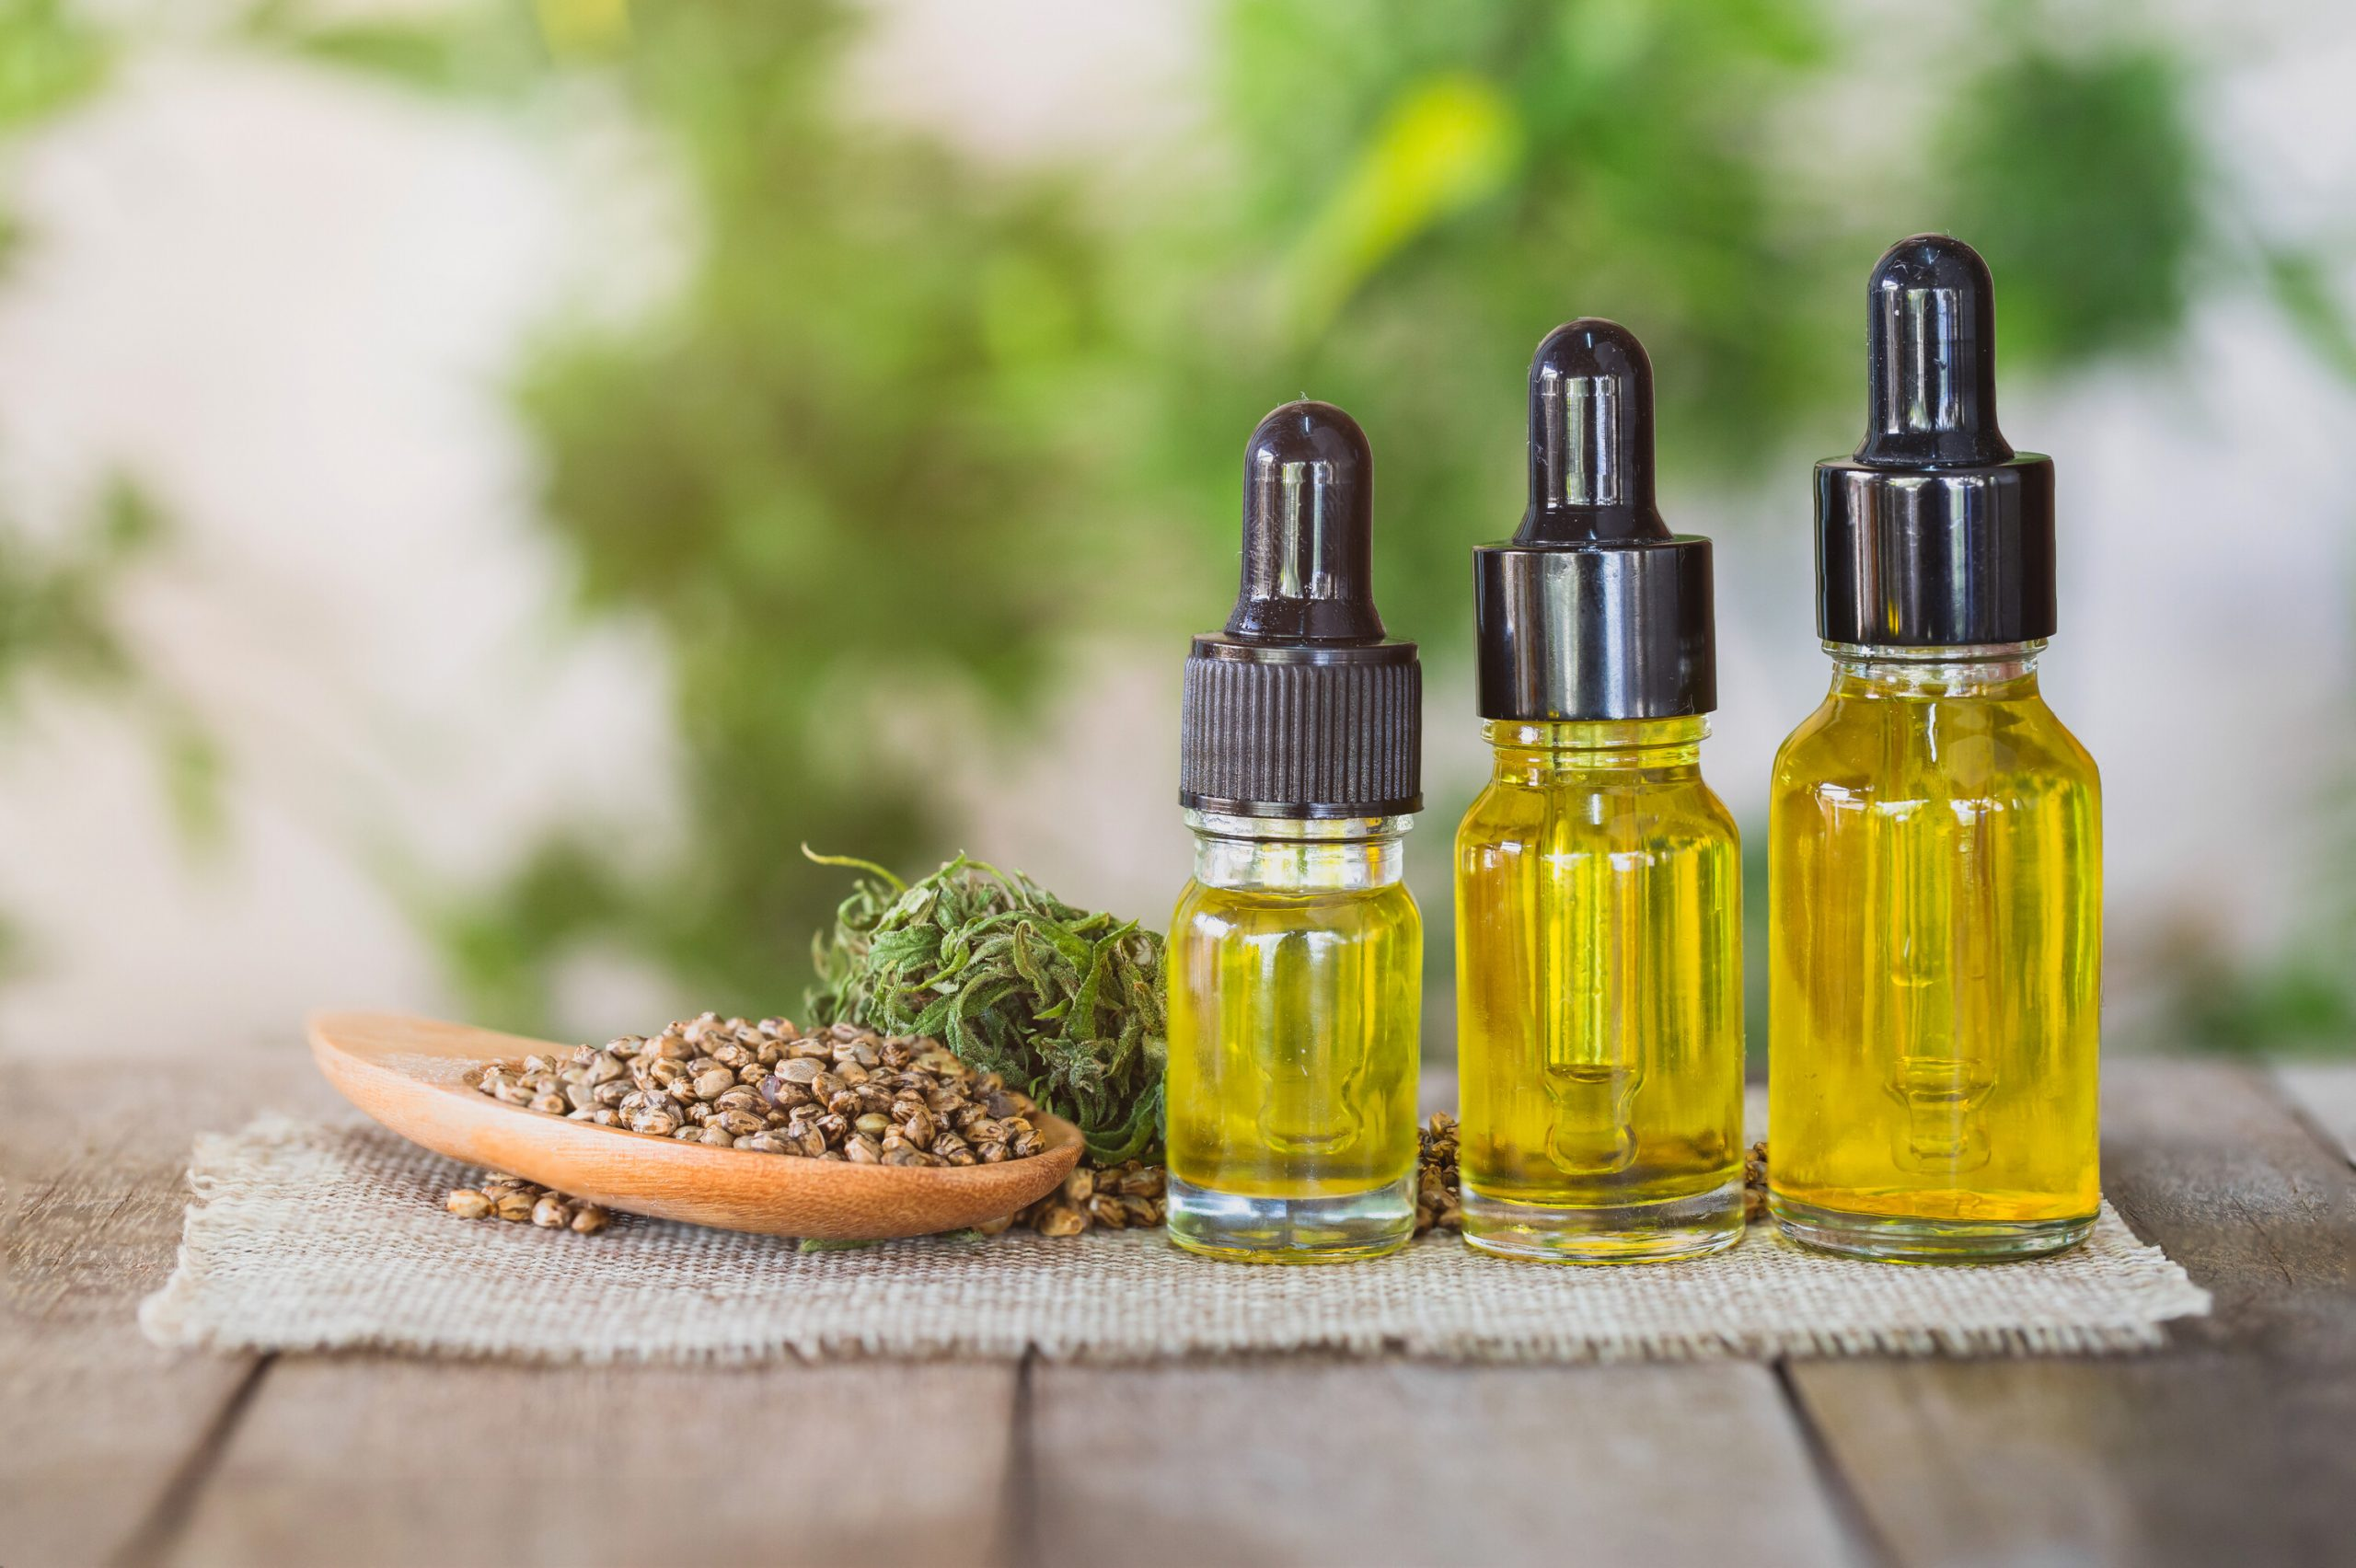 Bottles of CBD oil